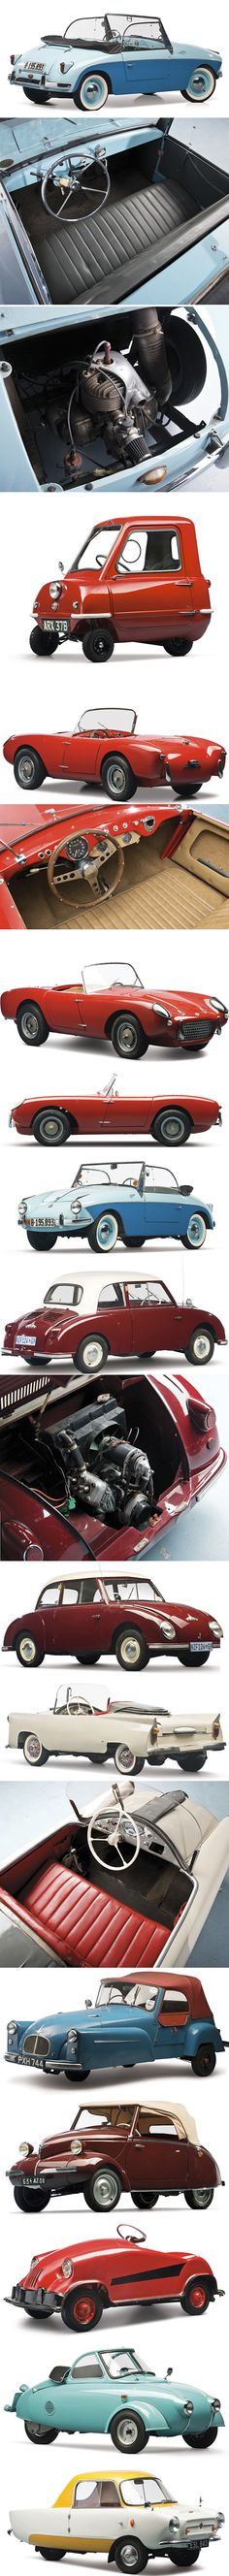 #Microcars from the 50s and 60s #coolcars QuirkyRides.com